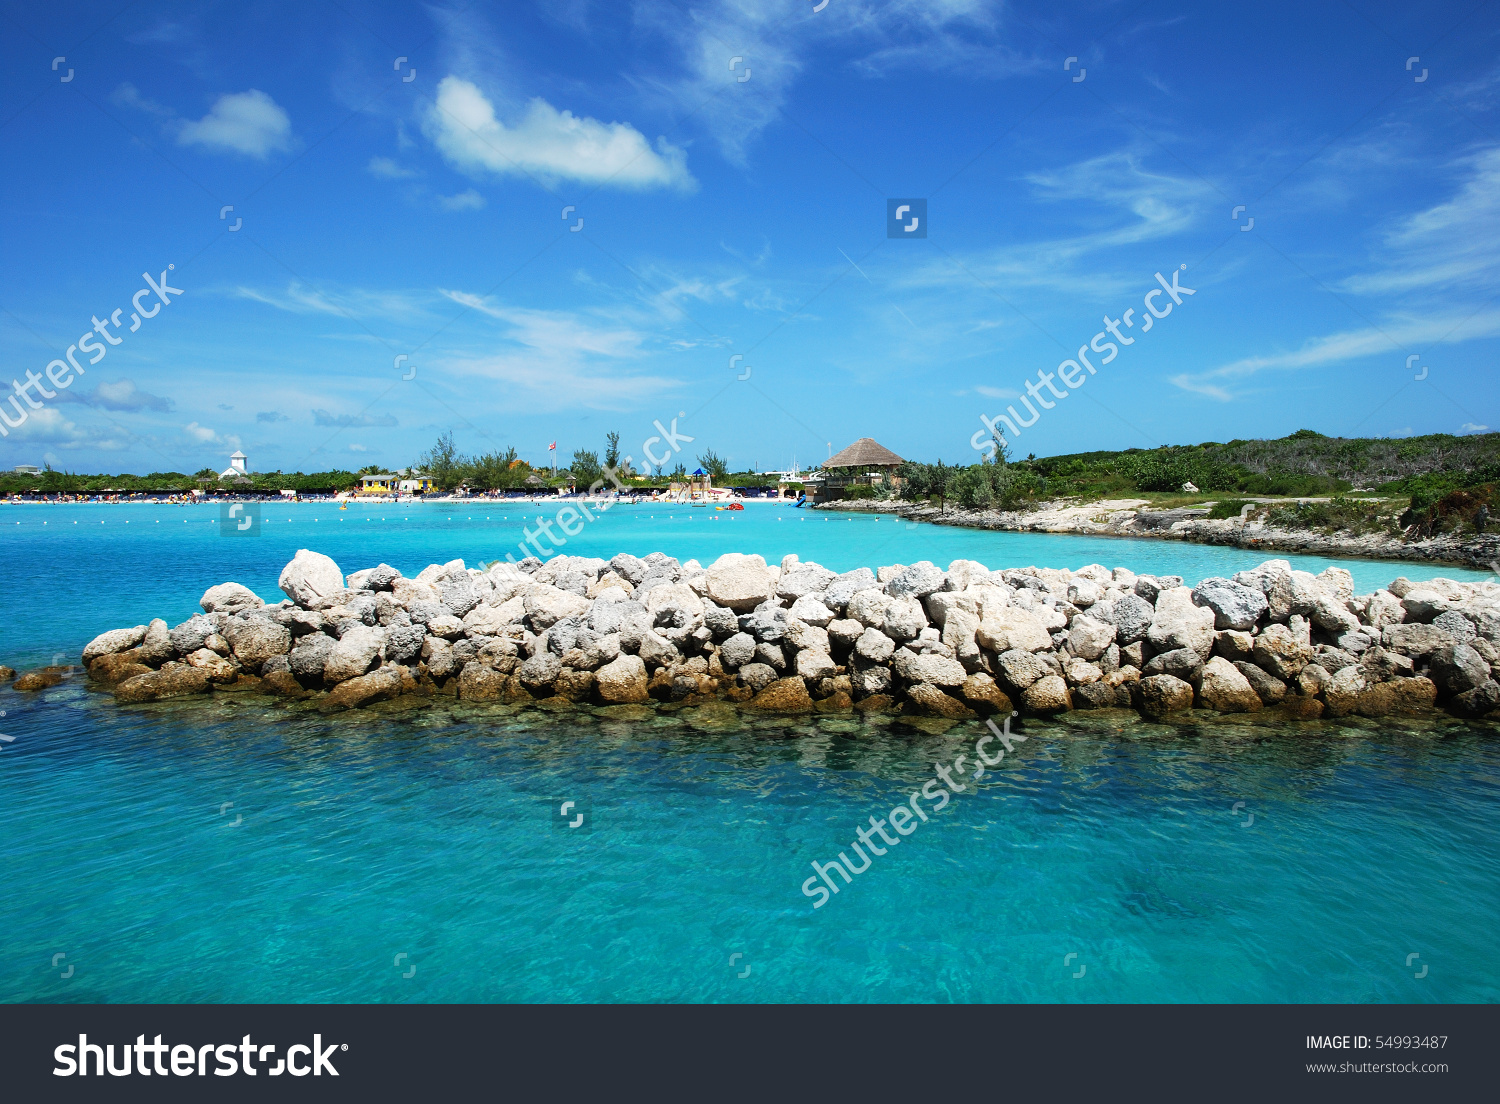 View Oh Half Moon Cay Little Stock Photo 54993487.